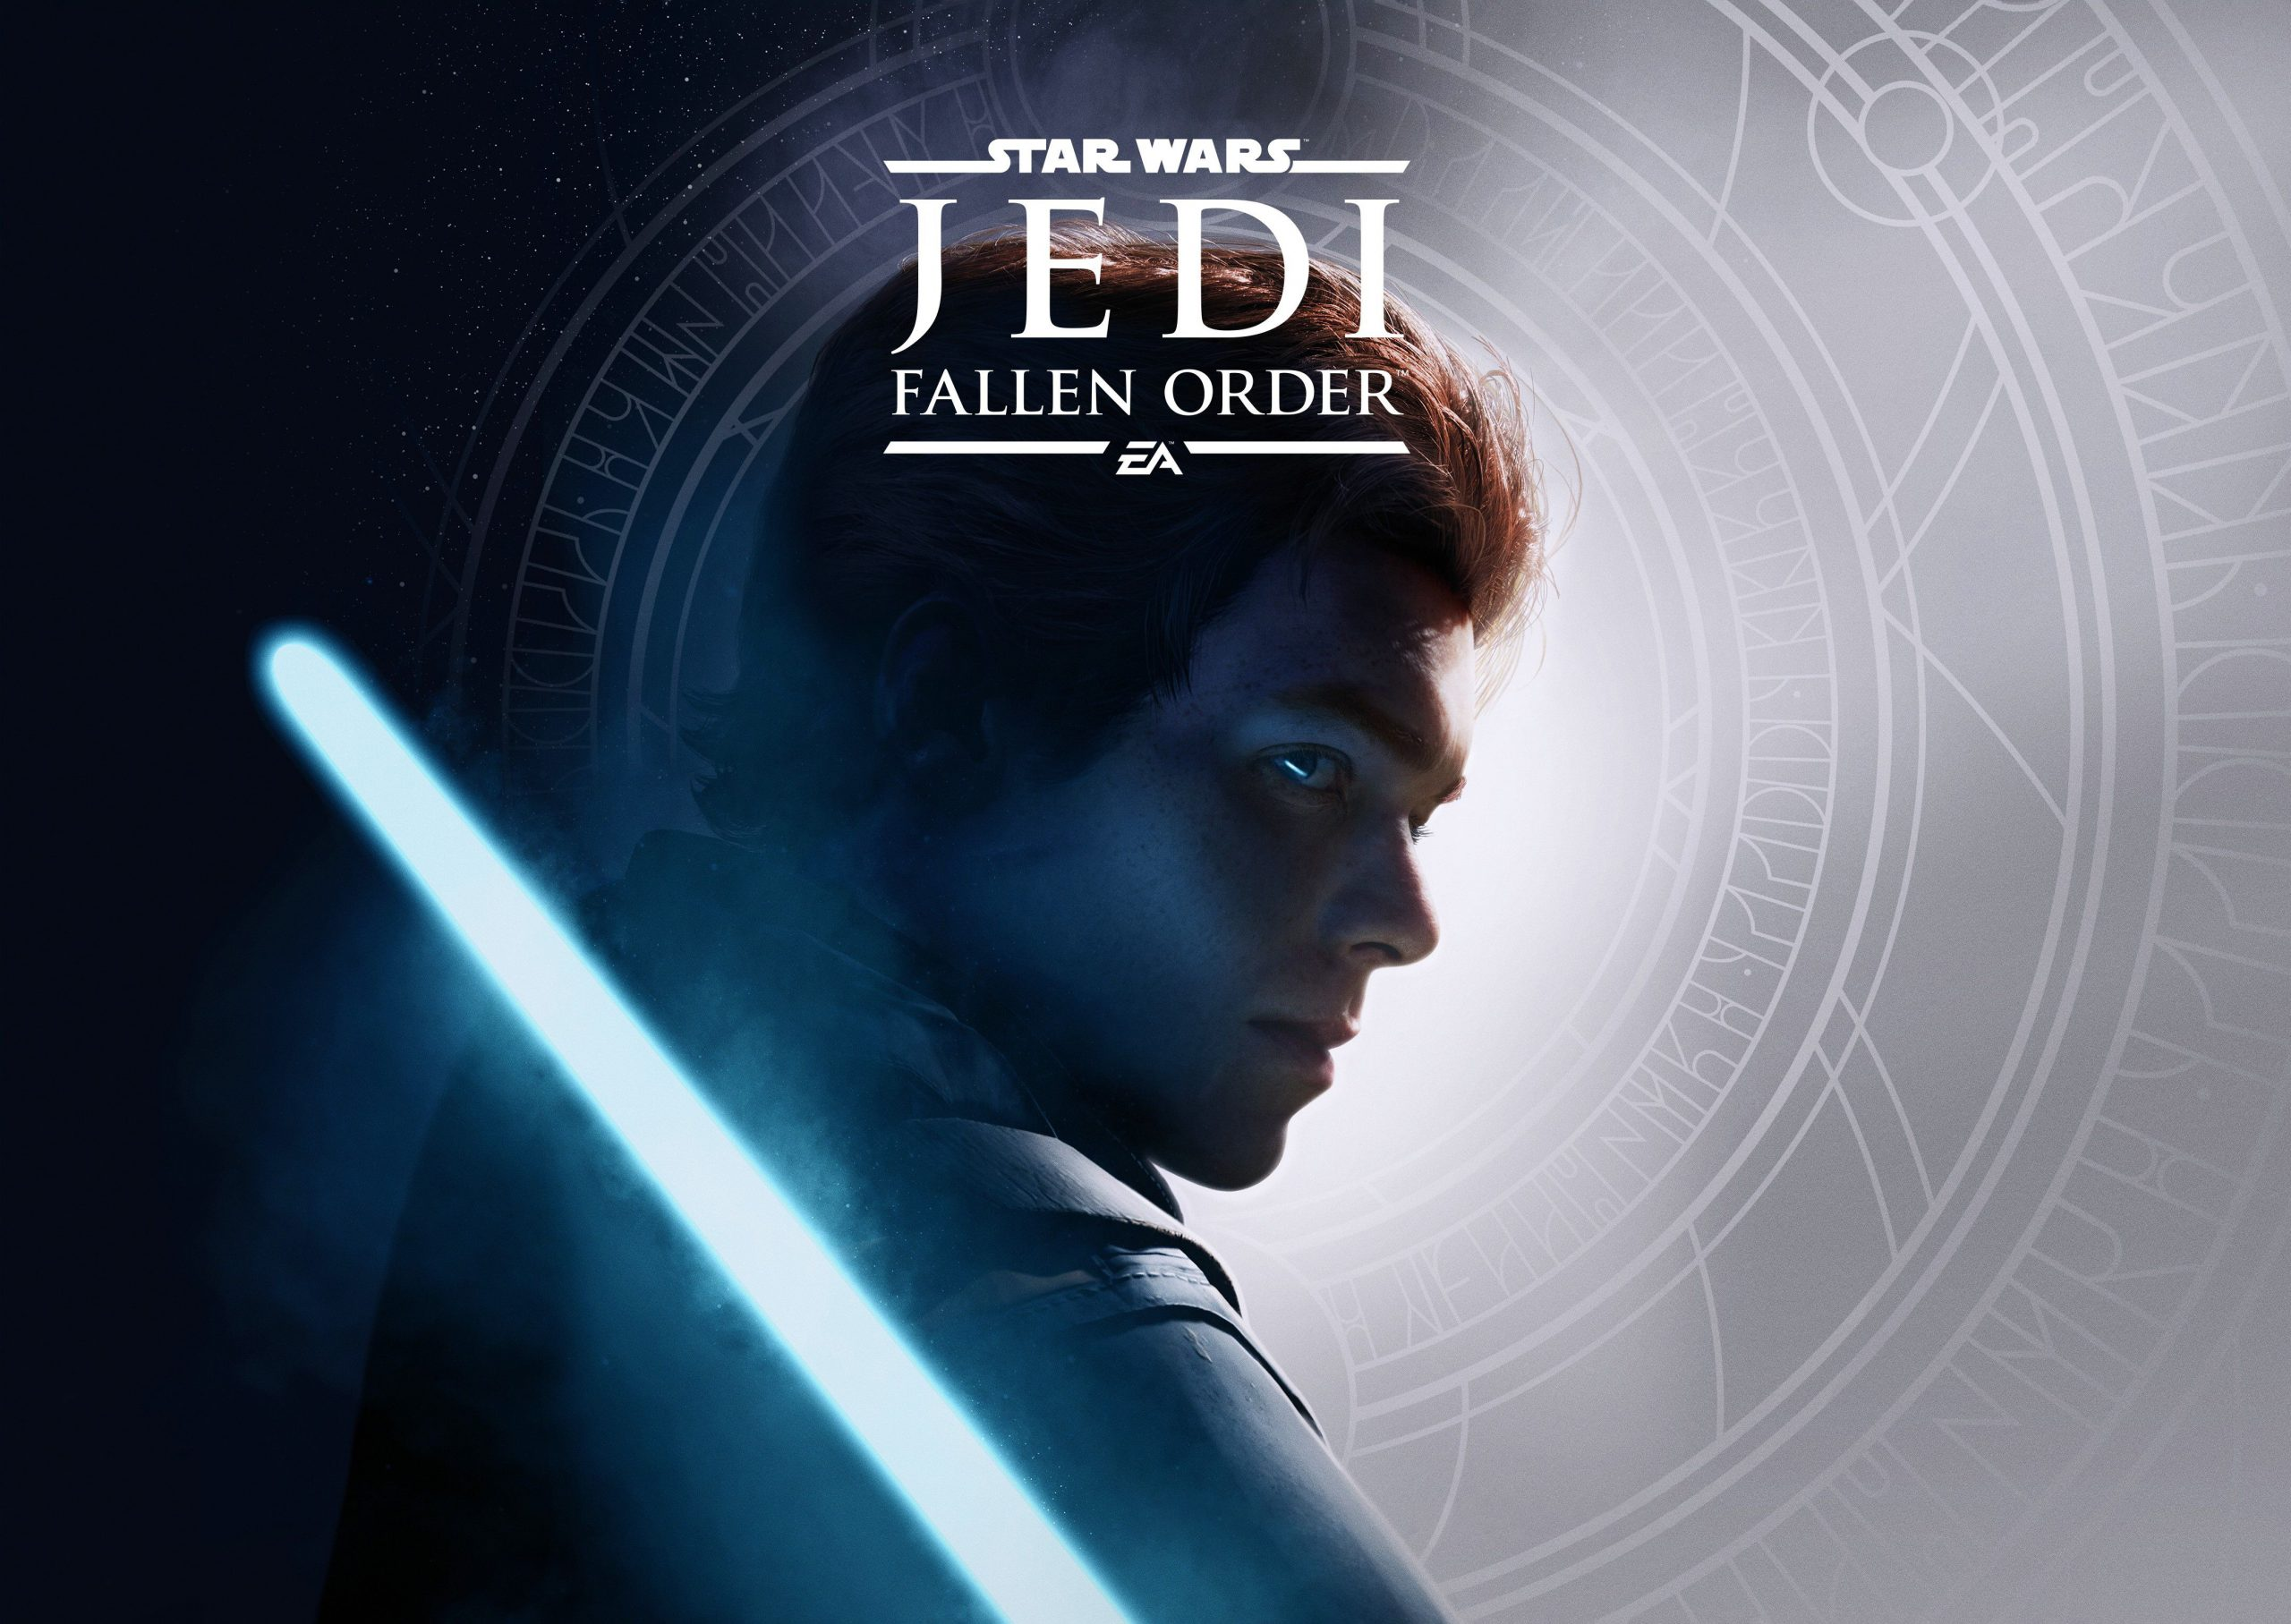 Star Wars Jedi: Fallen Order Activation Key PC Game For Free Download